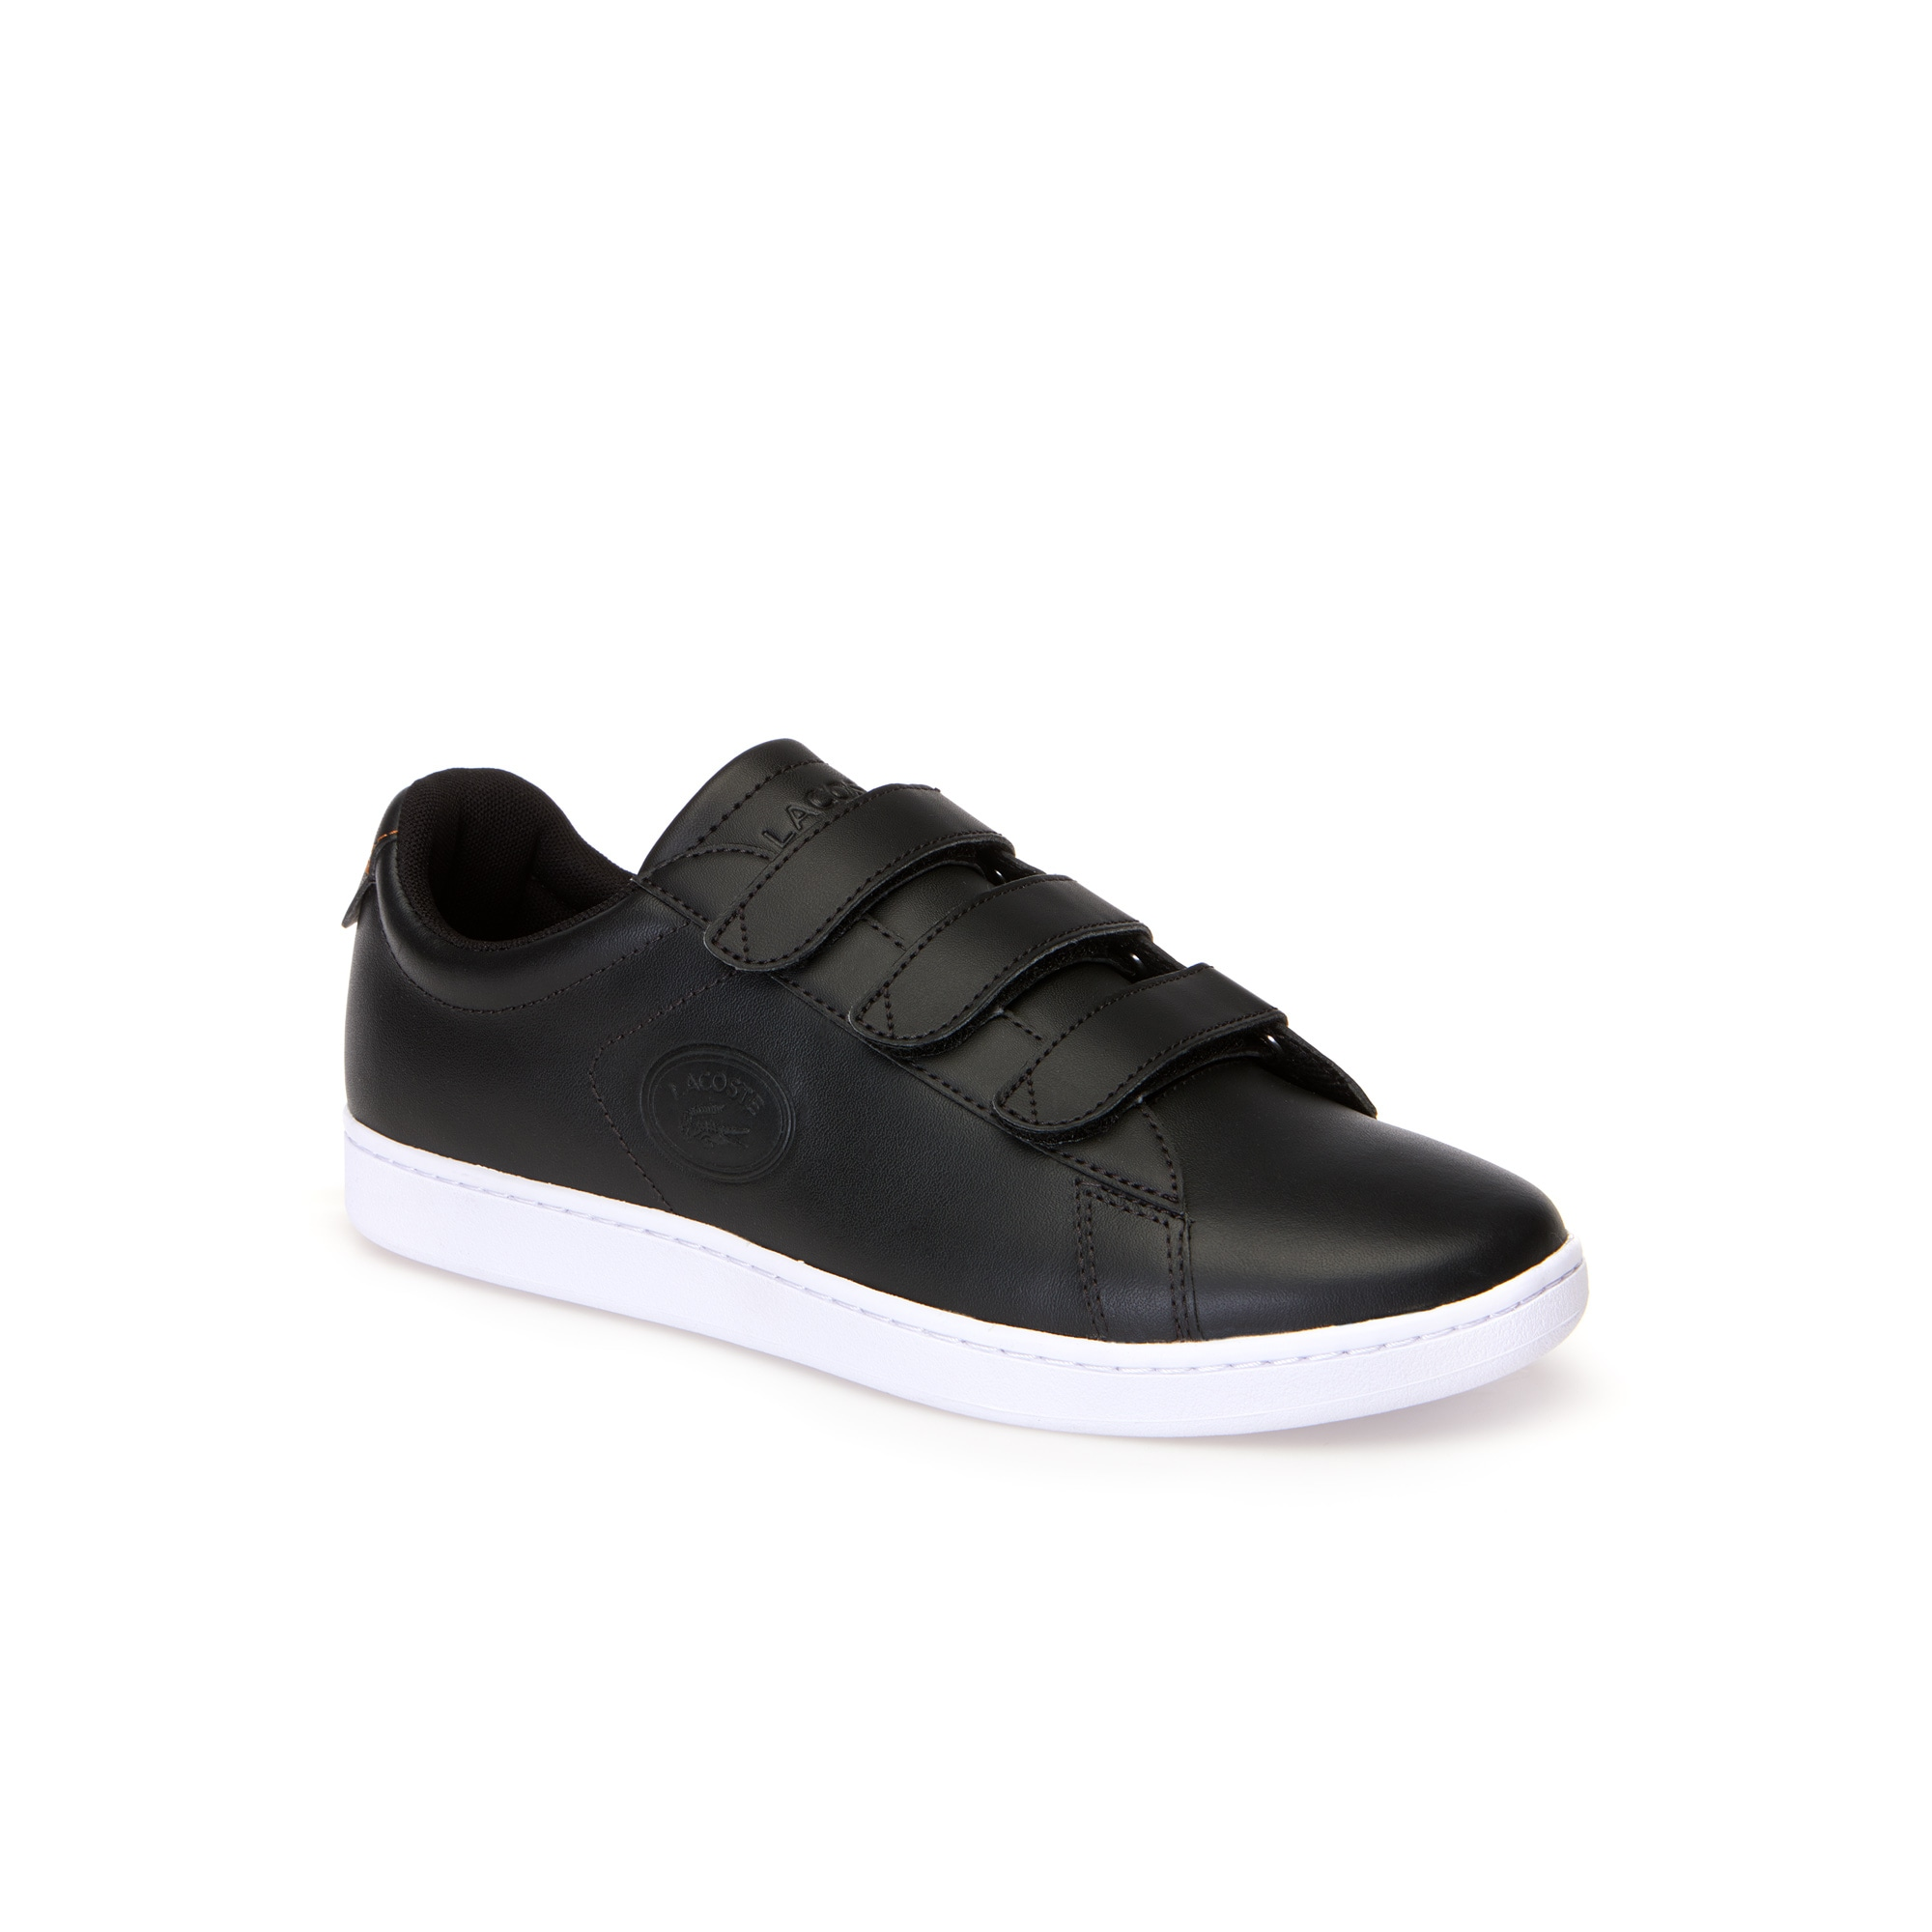 Men's Carnaby Evo Strap Leather Trainers